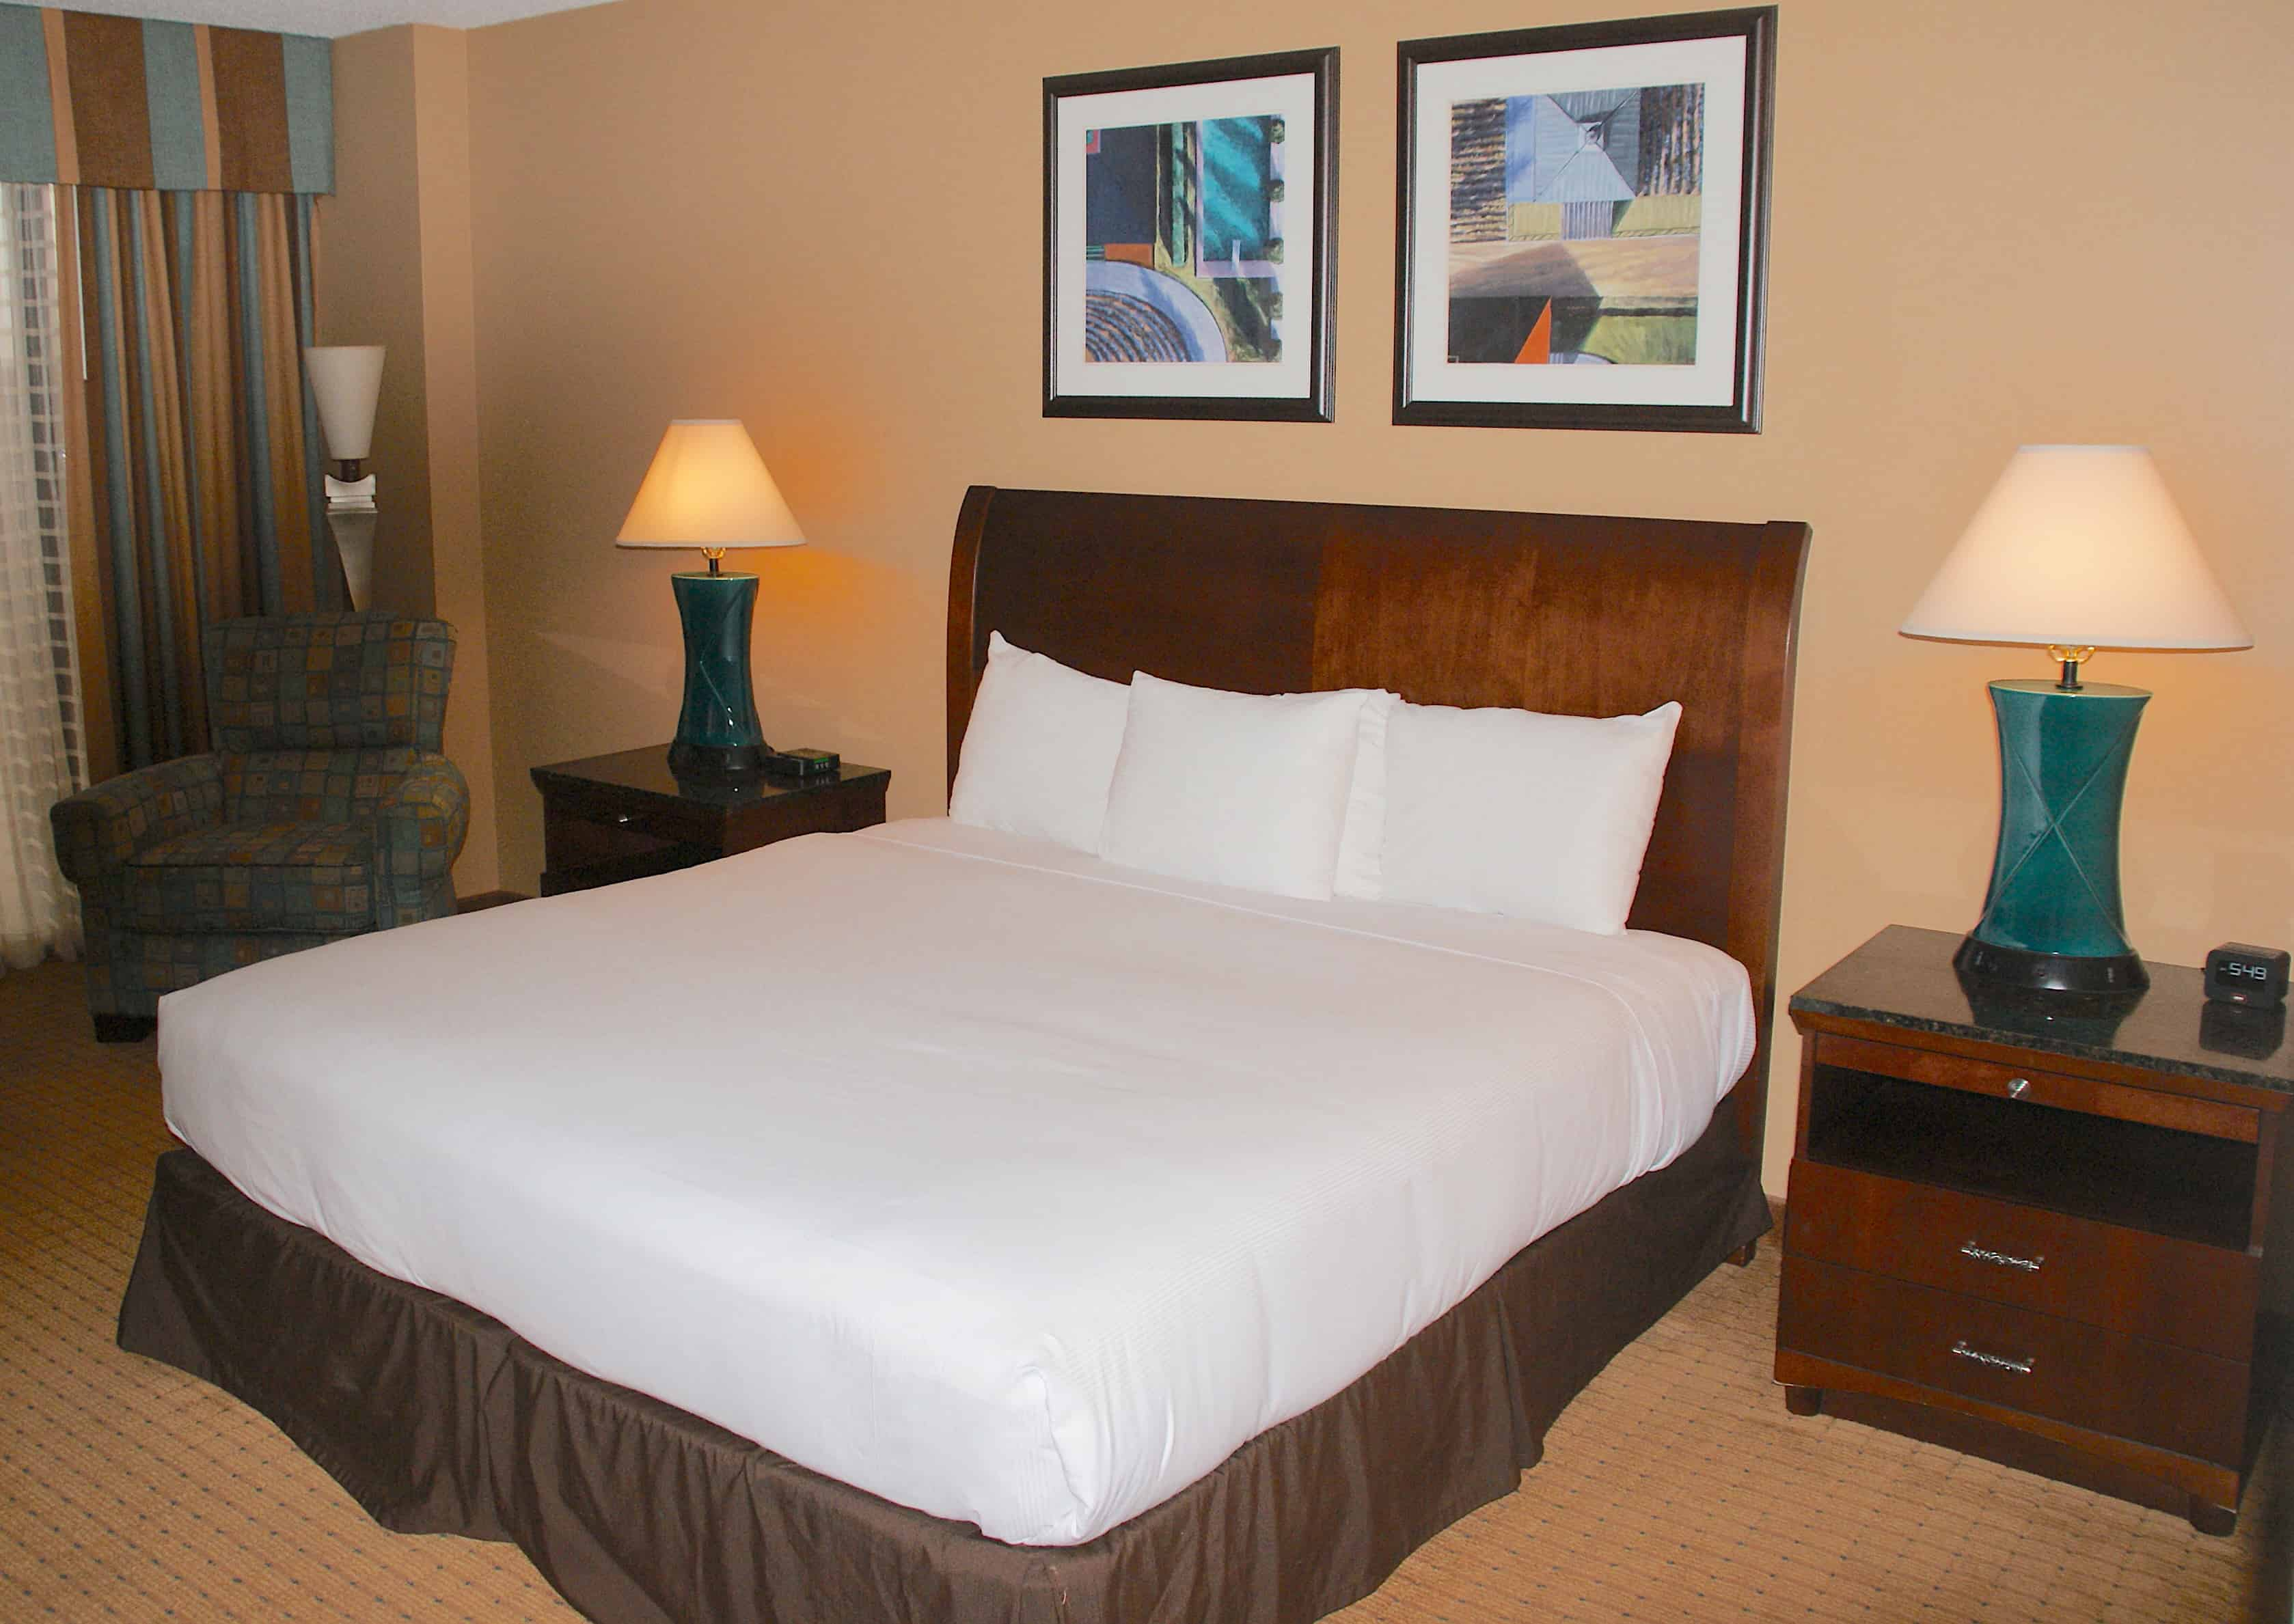 DoubleTree by Hilton Houston Downtown Guest Bedroom